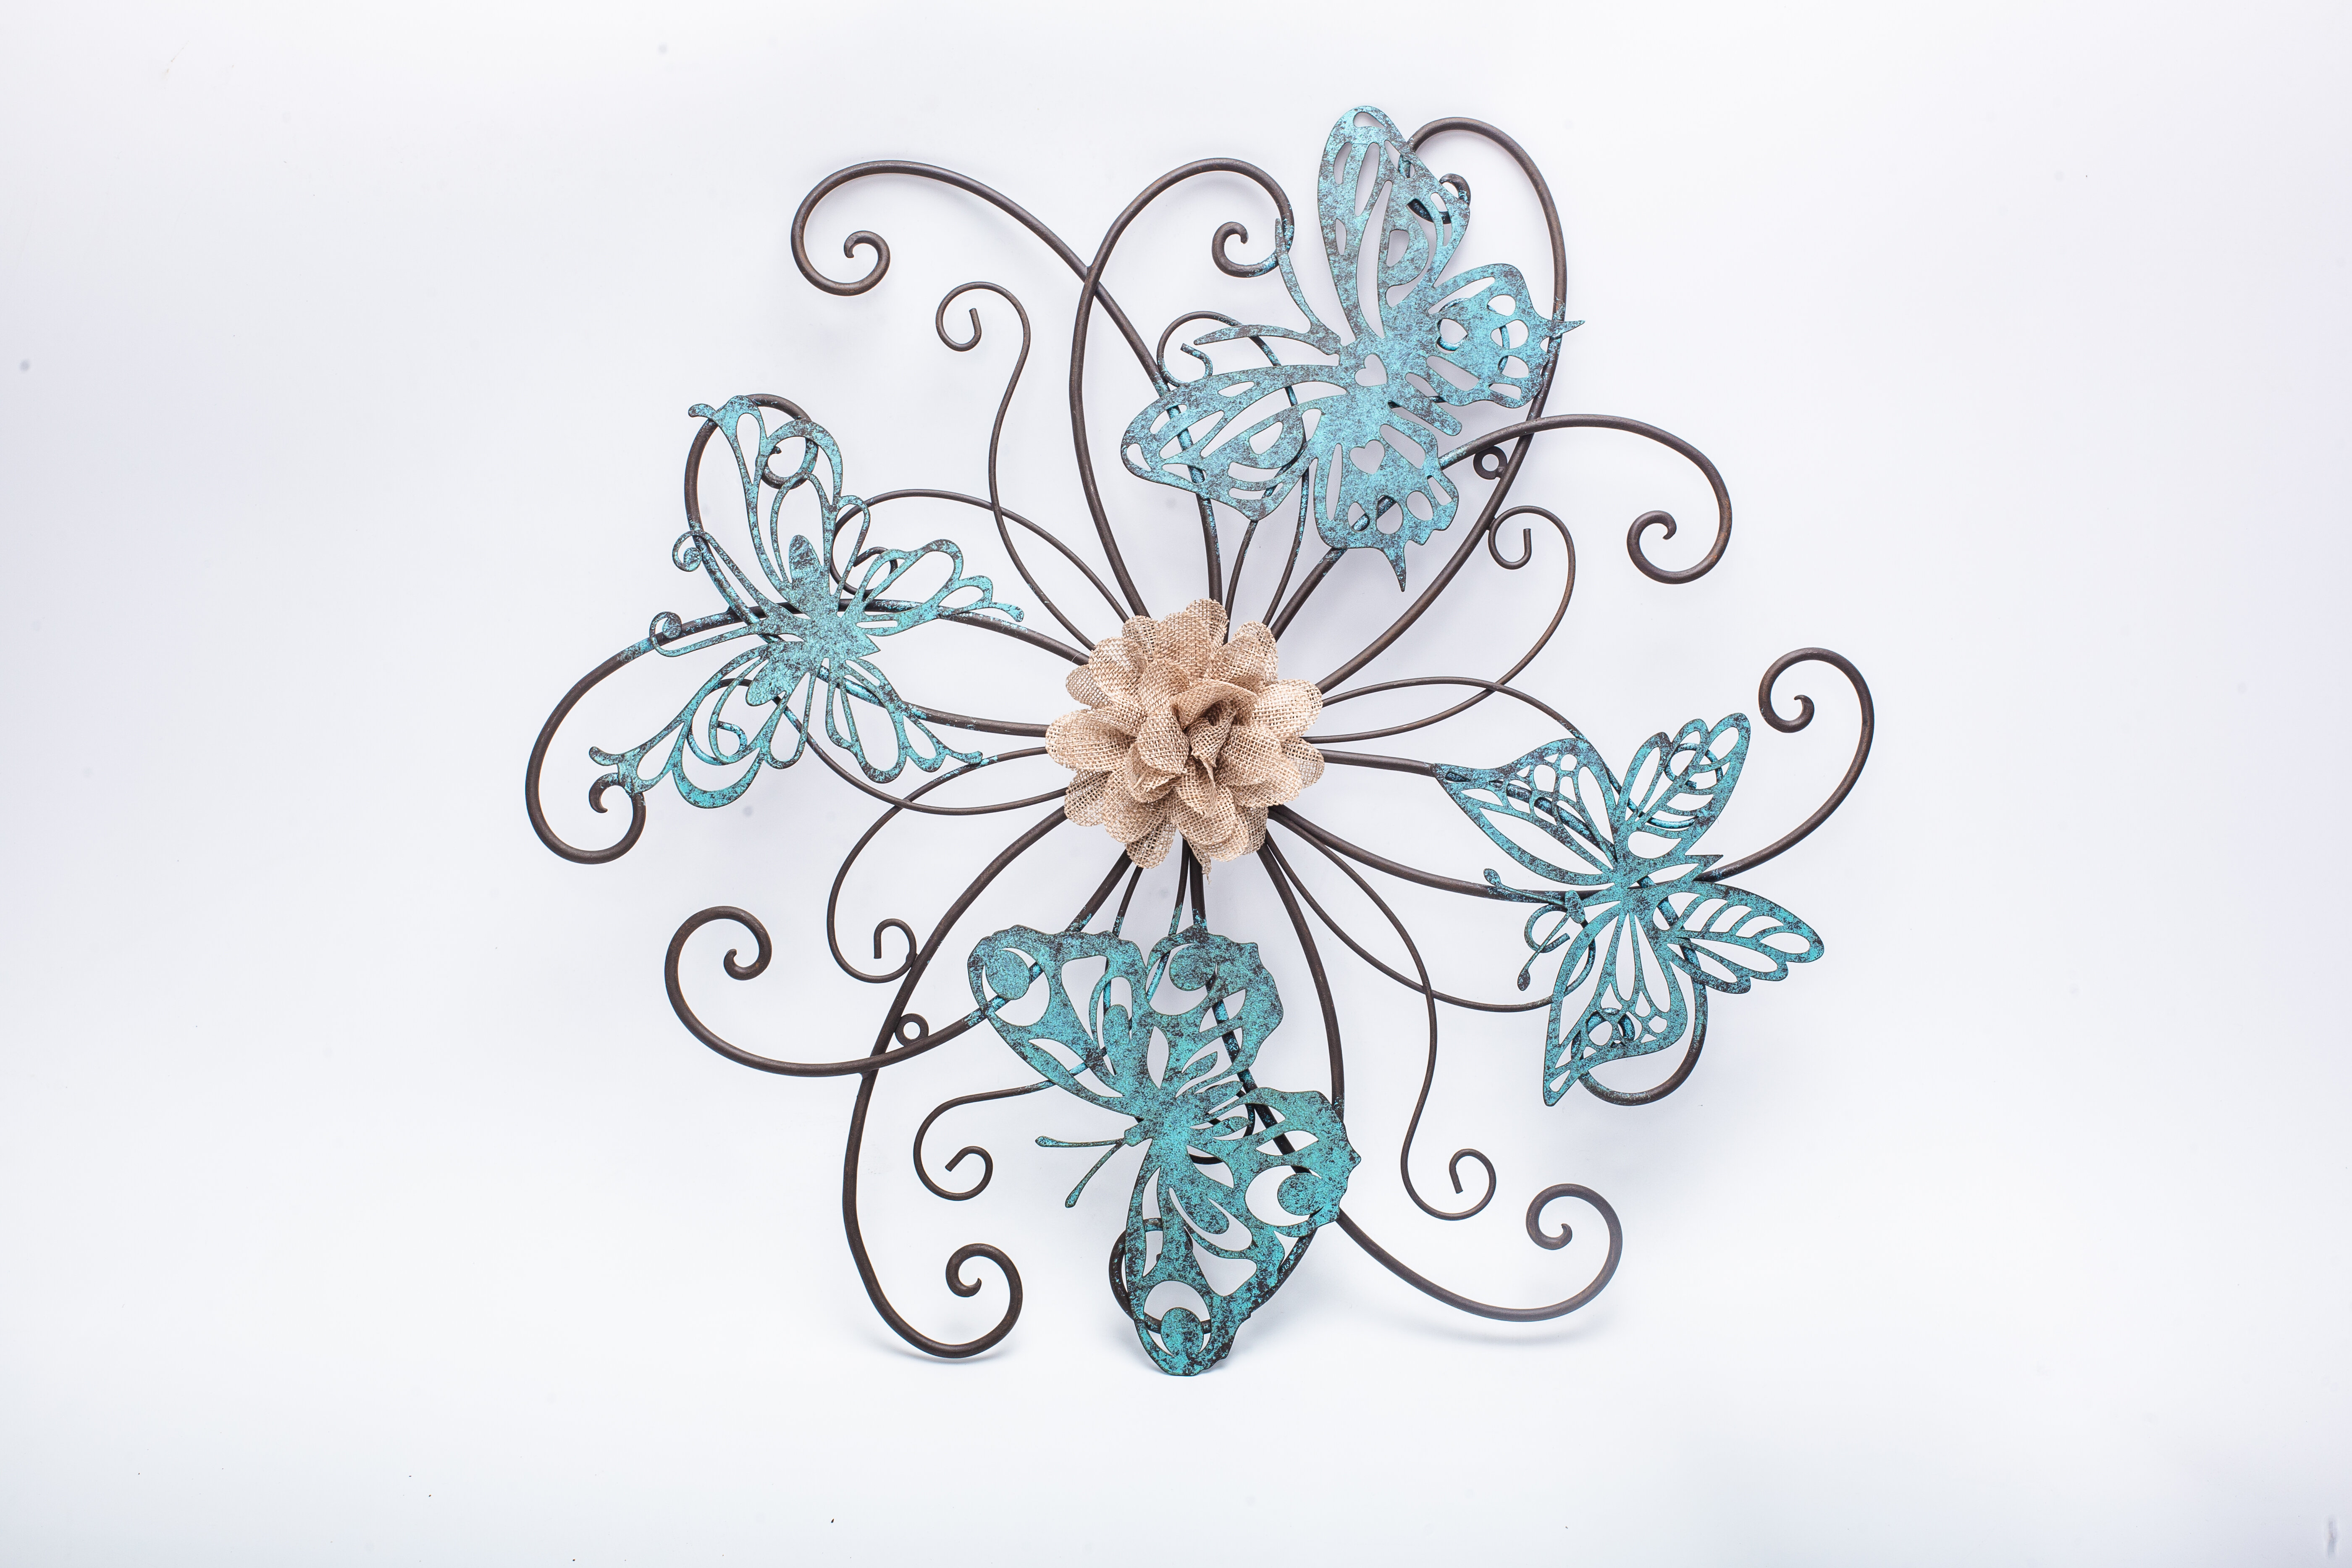 Adecotrading Flower And Butterfly Urban Design Metal Wall Décor Within Most Current Flower Urban Design Metal Wall Decor (View 1 of 20)